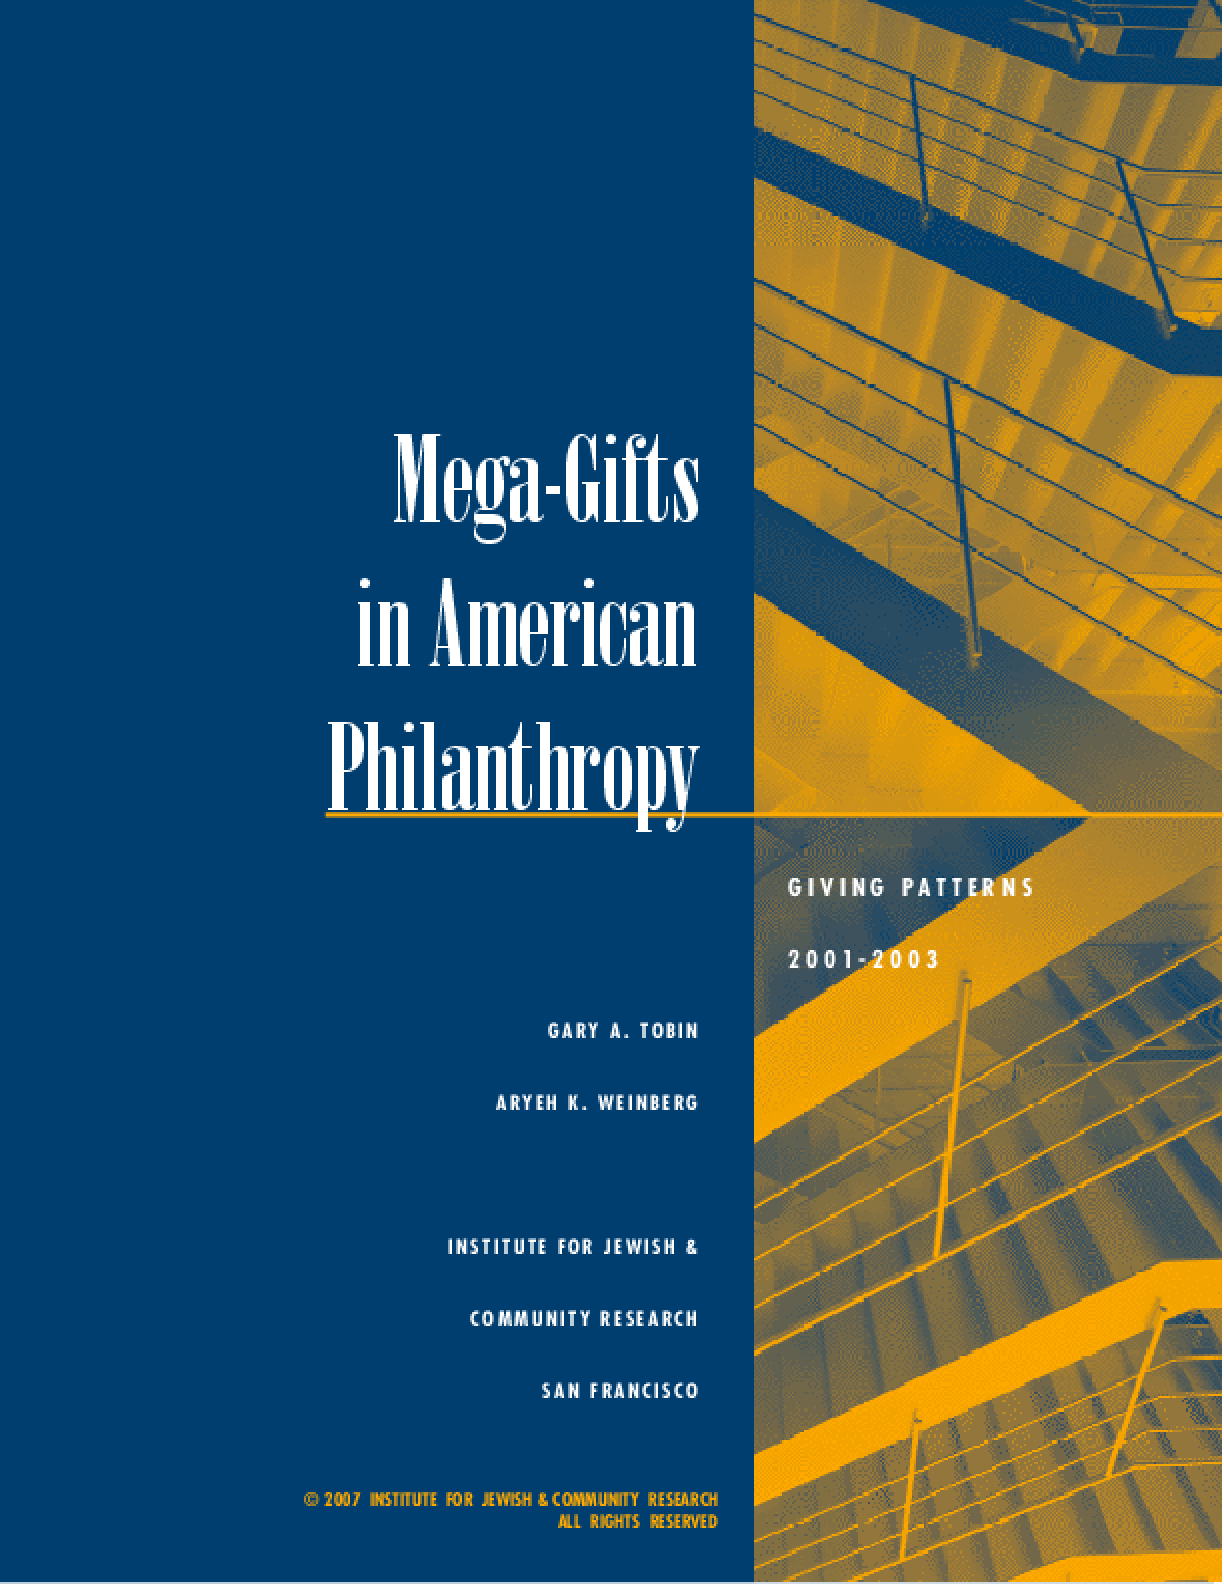 Mega-gifts in American Philanthropy: Giving Patterns 2001-2003